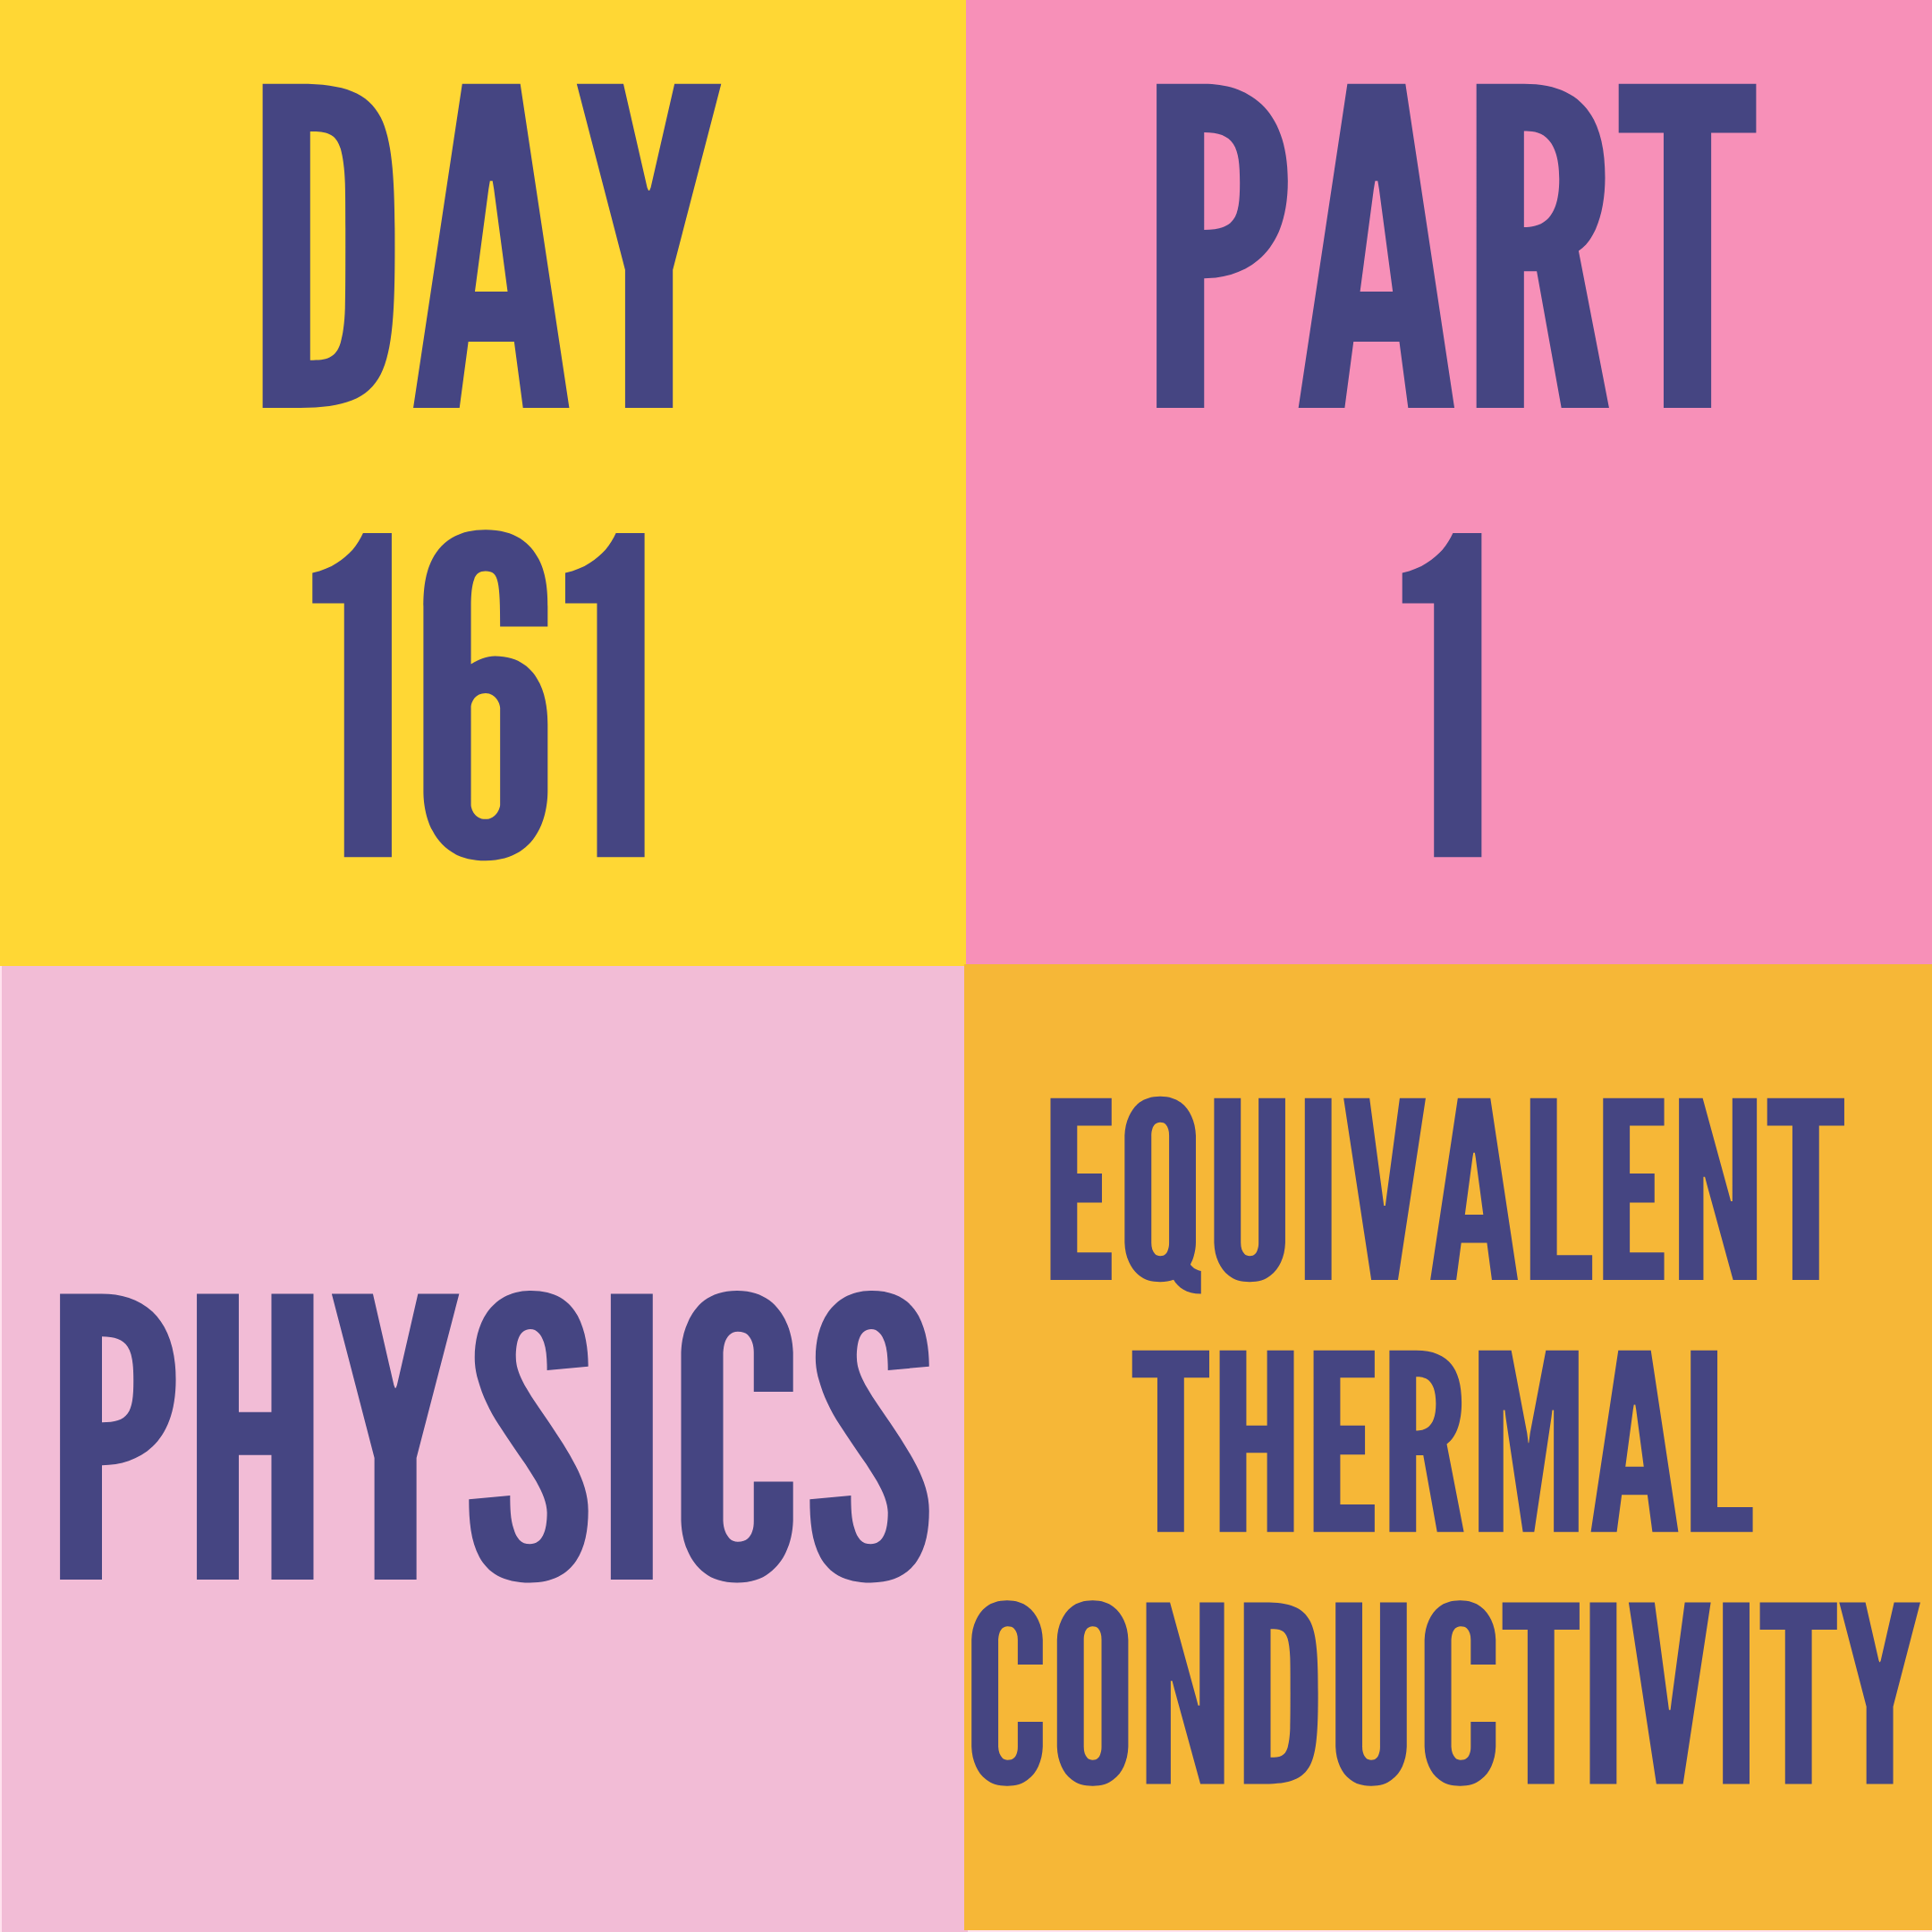 DAY-161 PART-1 EQUIVALENT THERMAL CONDUCTIVITY